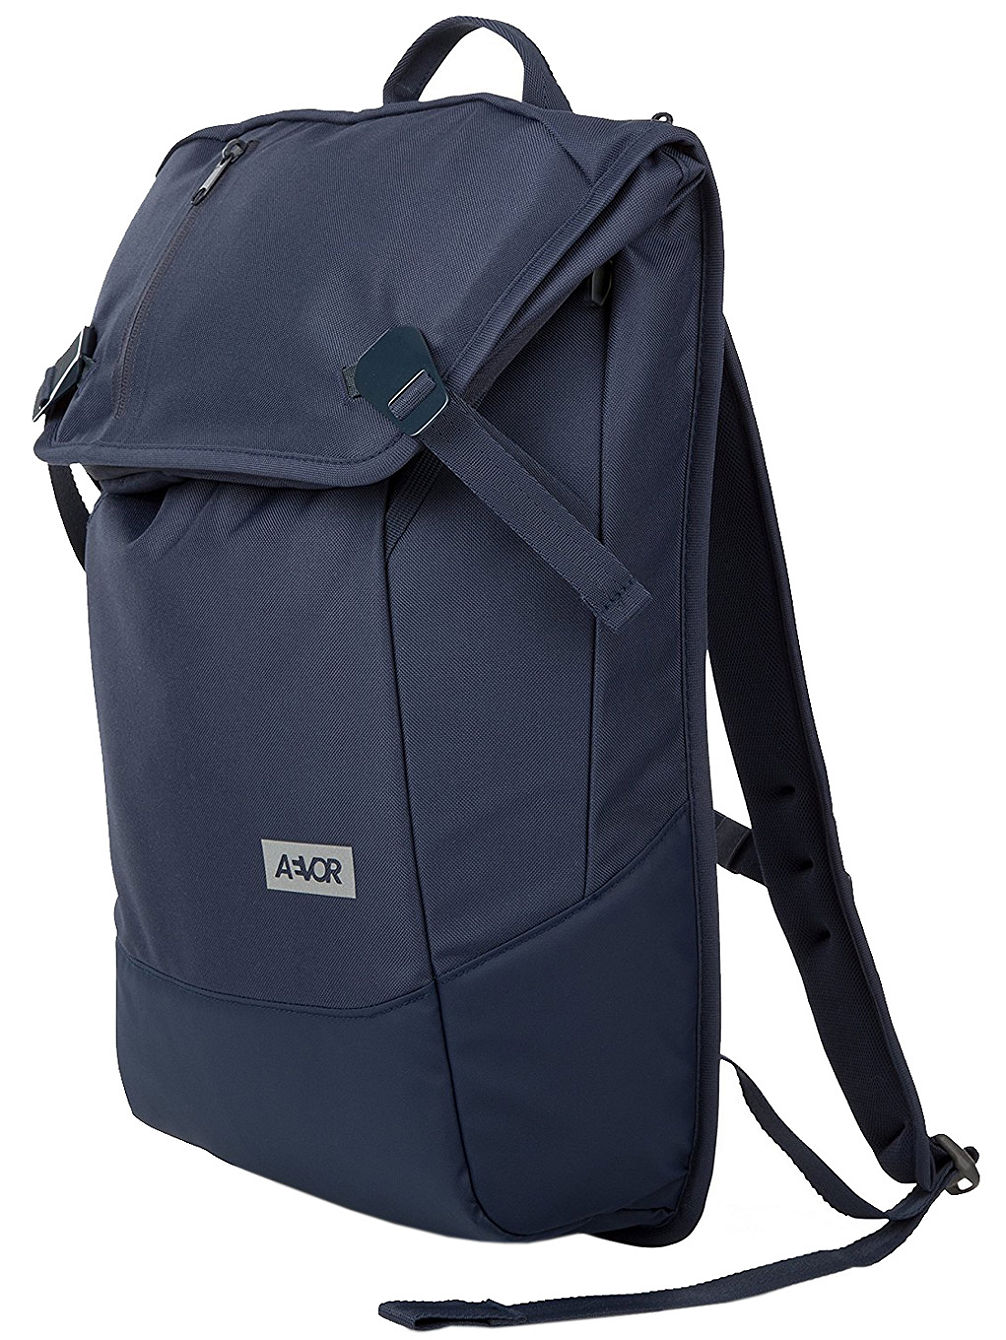 aevor daypack rucksack online kaufen bei blue. Black Bedroom Furniture Sets. Home Design Ideas